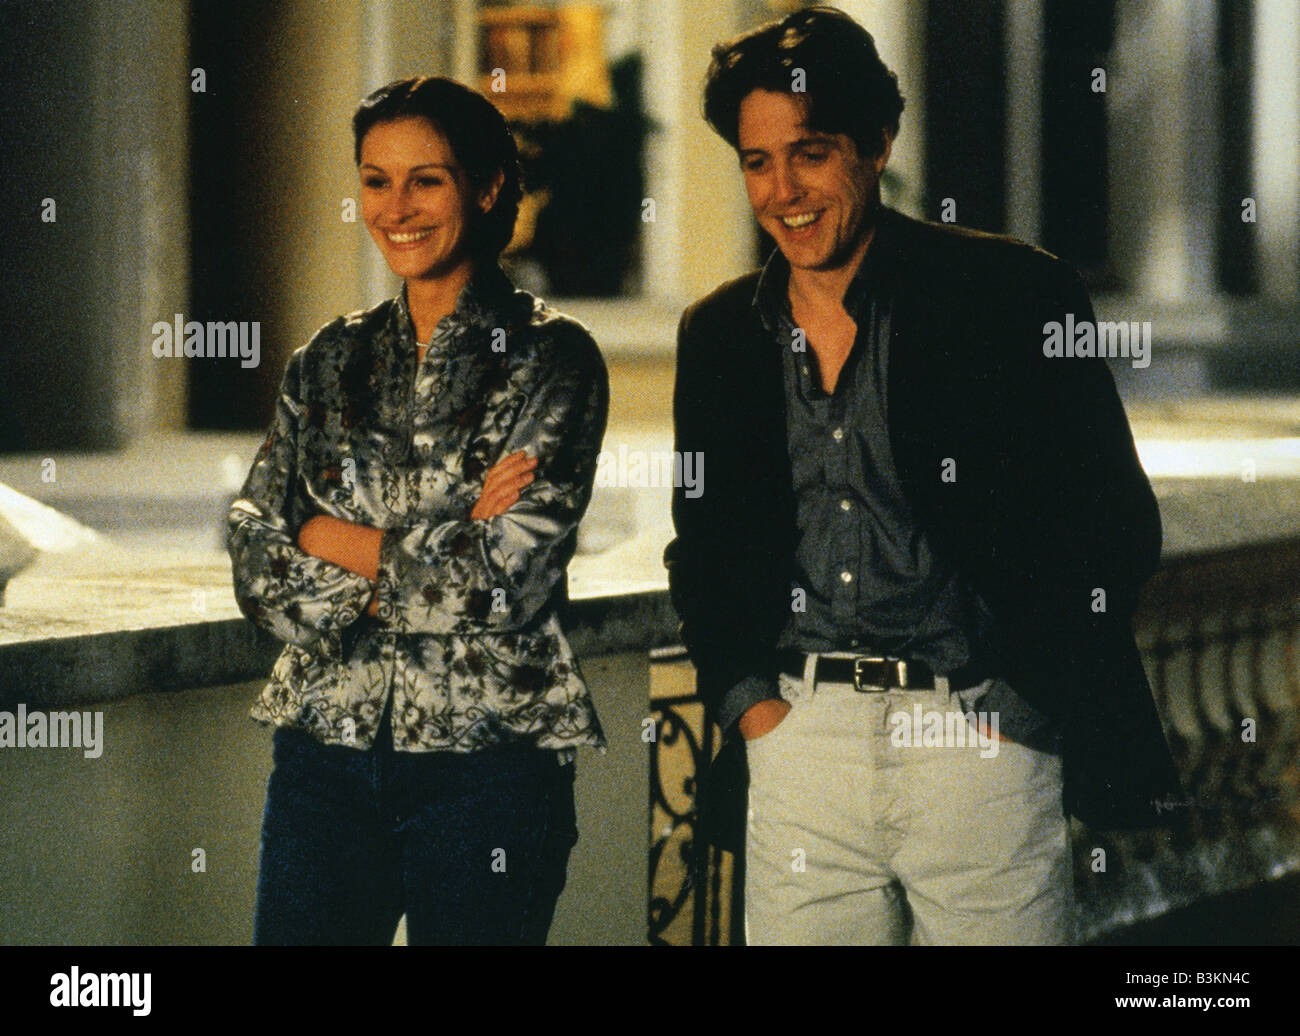 NOTTING HILL 1999 Polygram/Working Title film with Julia Roberts and Hugh Grant - Stock Image